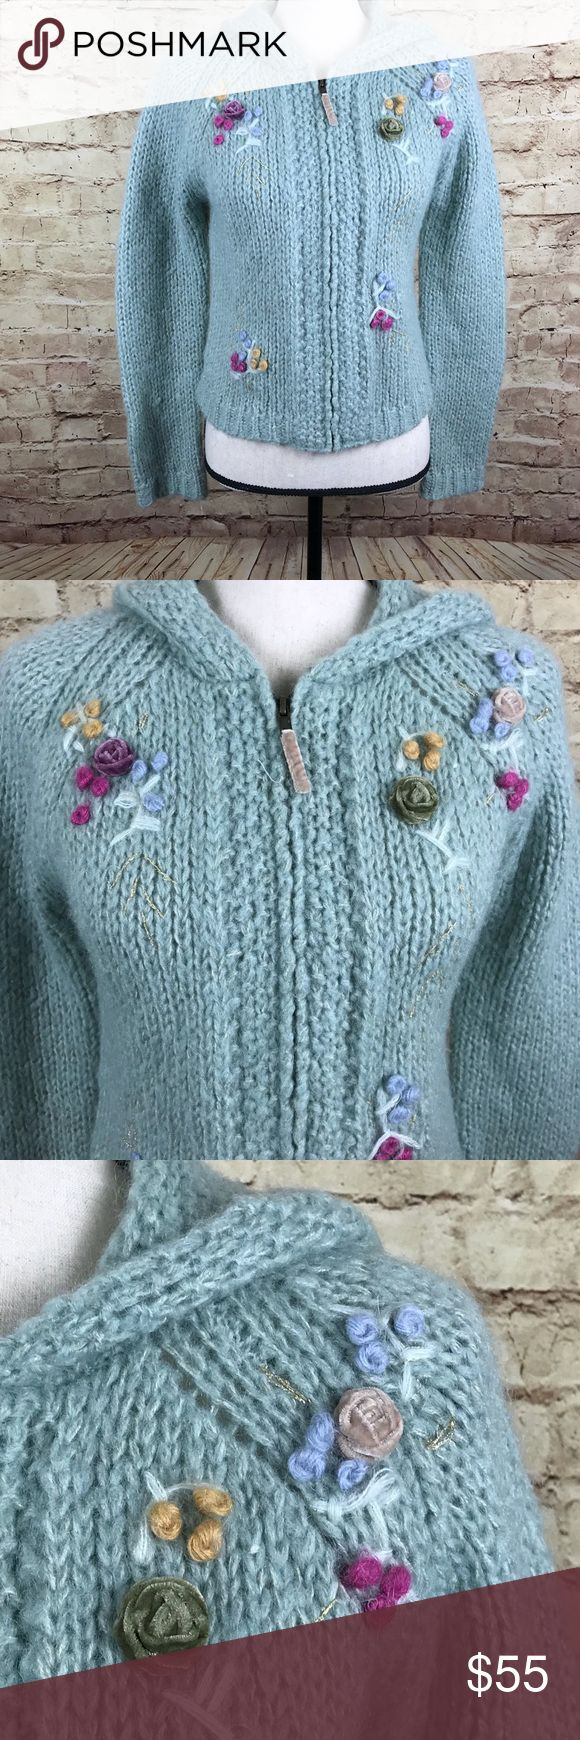 Anthropologie Sleeping on Snow Green Sweater Sz M Anthropologie Sleeping on Snow Women Hoodie Sweater  Green, Gold, Blue, Purple (Color may vary from photo. Hoodie is seafoam green) Embroidered Floral  Size M Approximate measurements: bust 18 inches; sleeve 28 inches; length 19.5 inches Anthropologie Sweaters